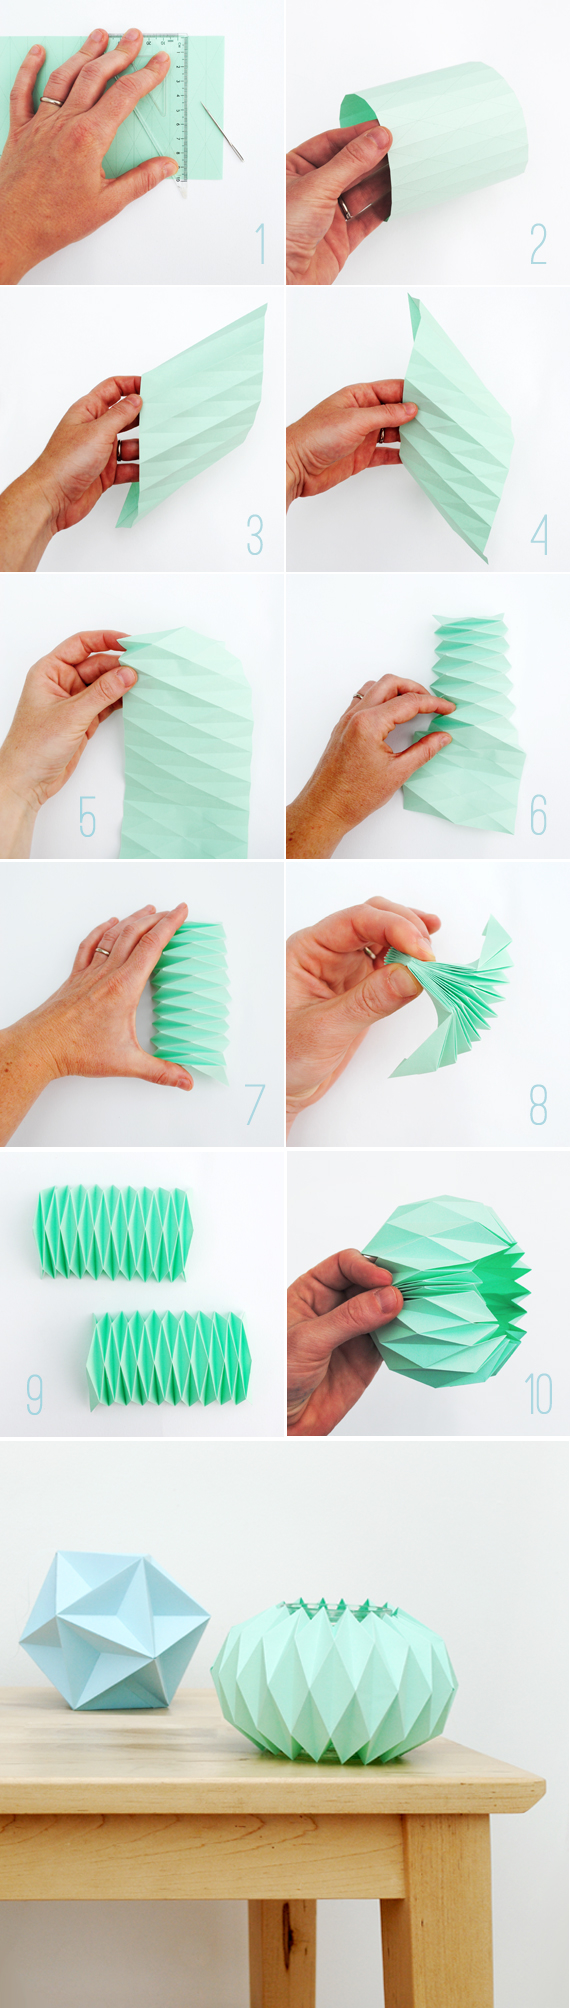 Diy accordion paper folding candle holder pictures photos and images for facebook tumblr Home decor craft step by step